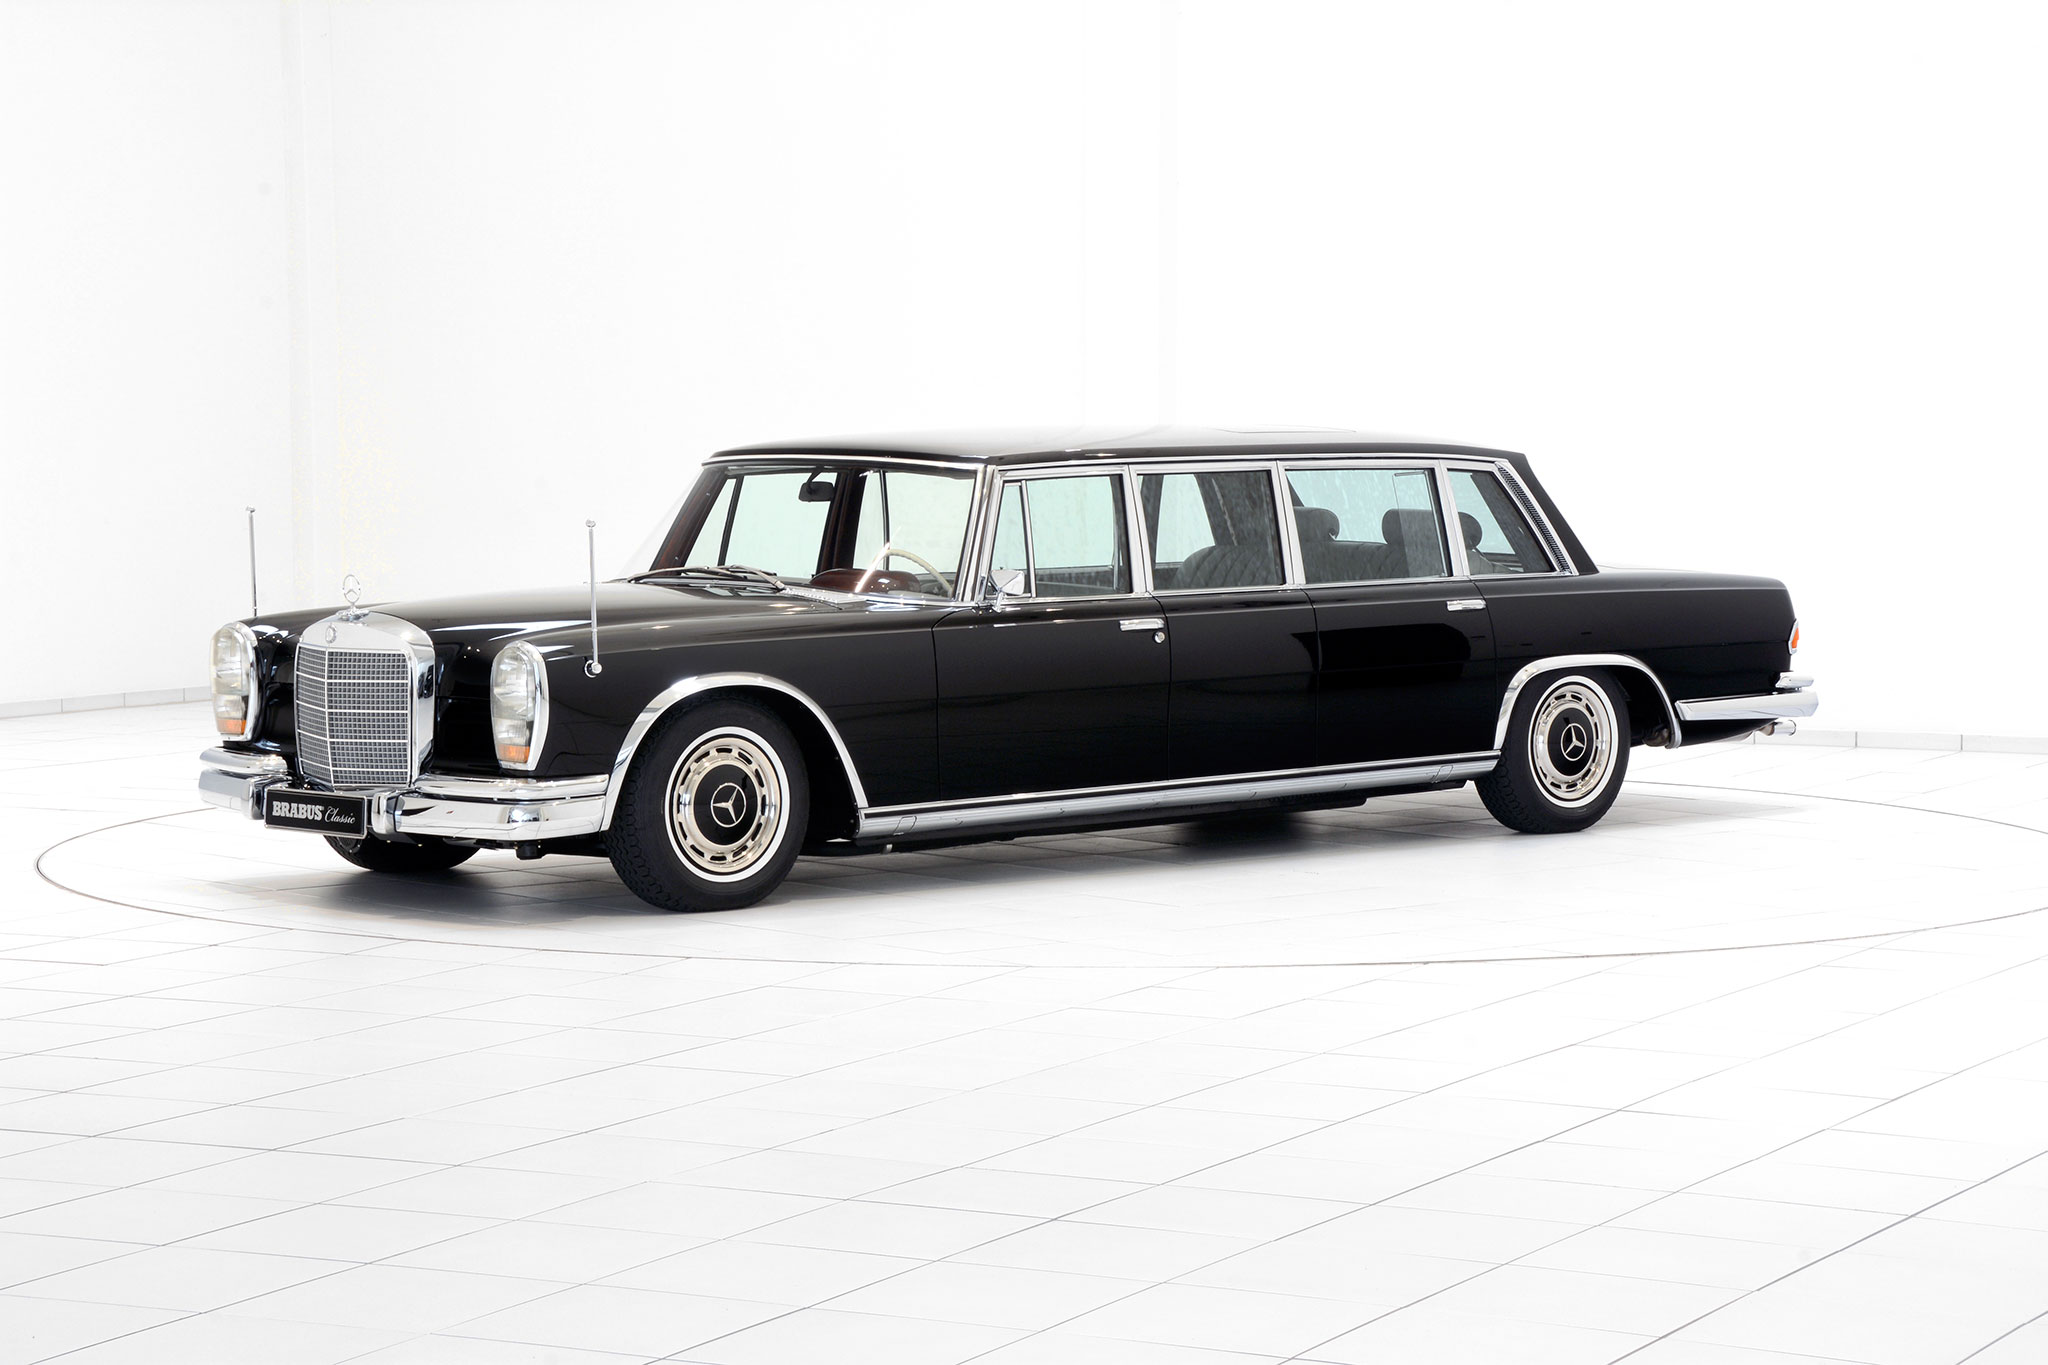 Brabus promotes classic services with restored mercedes for Mercedes benz classic magazine